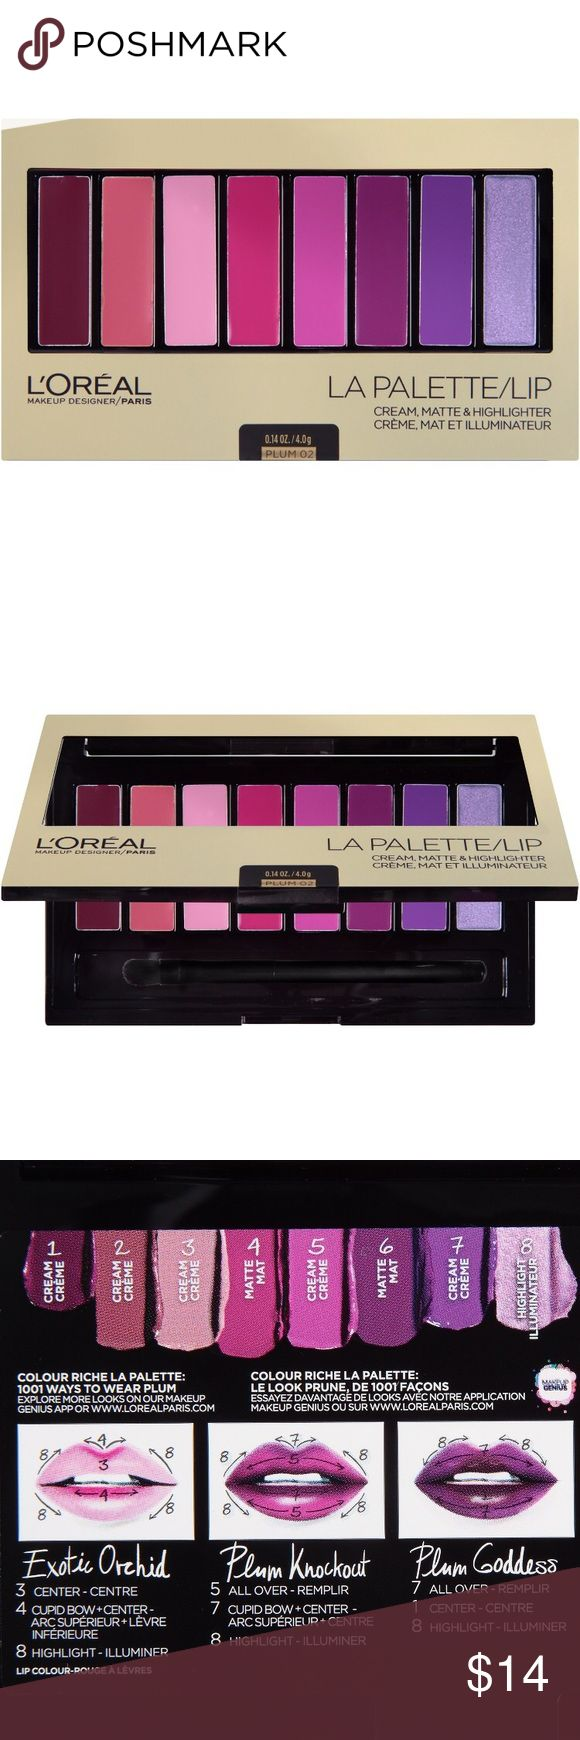 NEW L'ORÉAL La Palette Lip - Plum 👄 BRAND NEW, sealed & unopened palette of 8 beautiful colors that let you create an infinite number of looks. From my smoke free home. Original Retail: $19.   👄ABOUT: L'Oreal's Color Riche La Palette Lip Plum gives you 1001 ways to wear plum! L'Oreal's first multi-finish and multi-color  lip palette has expertly curated colors with 3 unique multi-finish textures; cream, matte and highlighter. Benefits:  👄 Alluring color, designer textures, infinite looks…